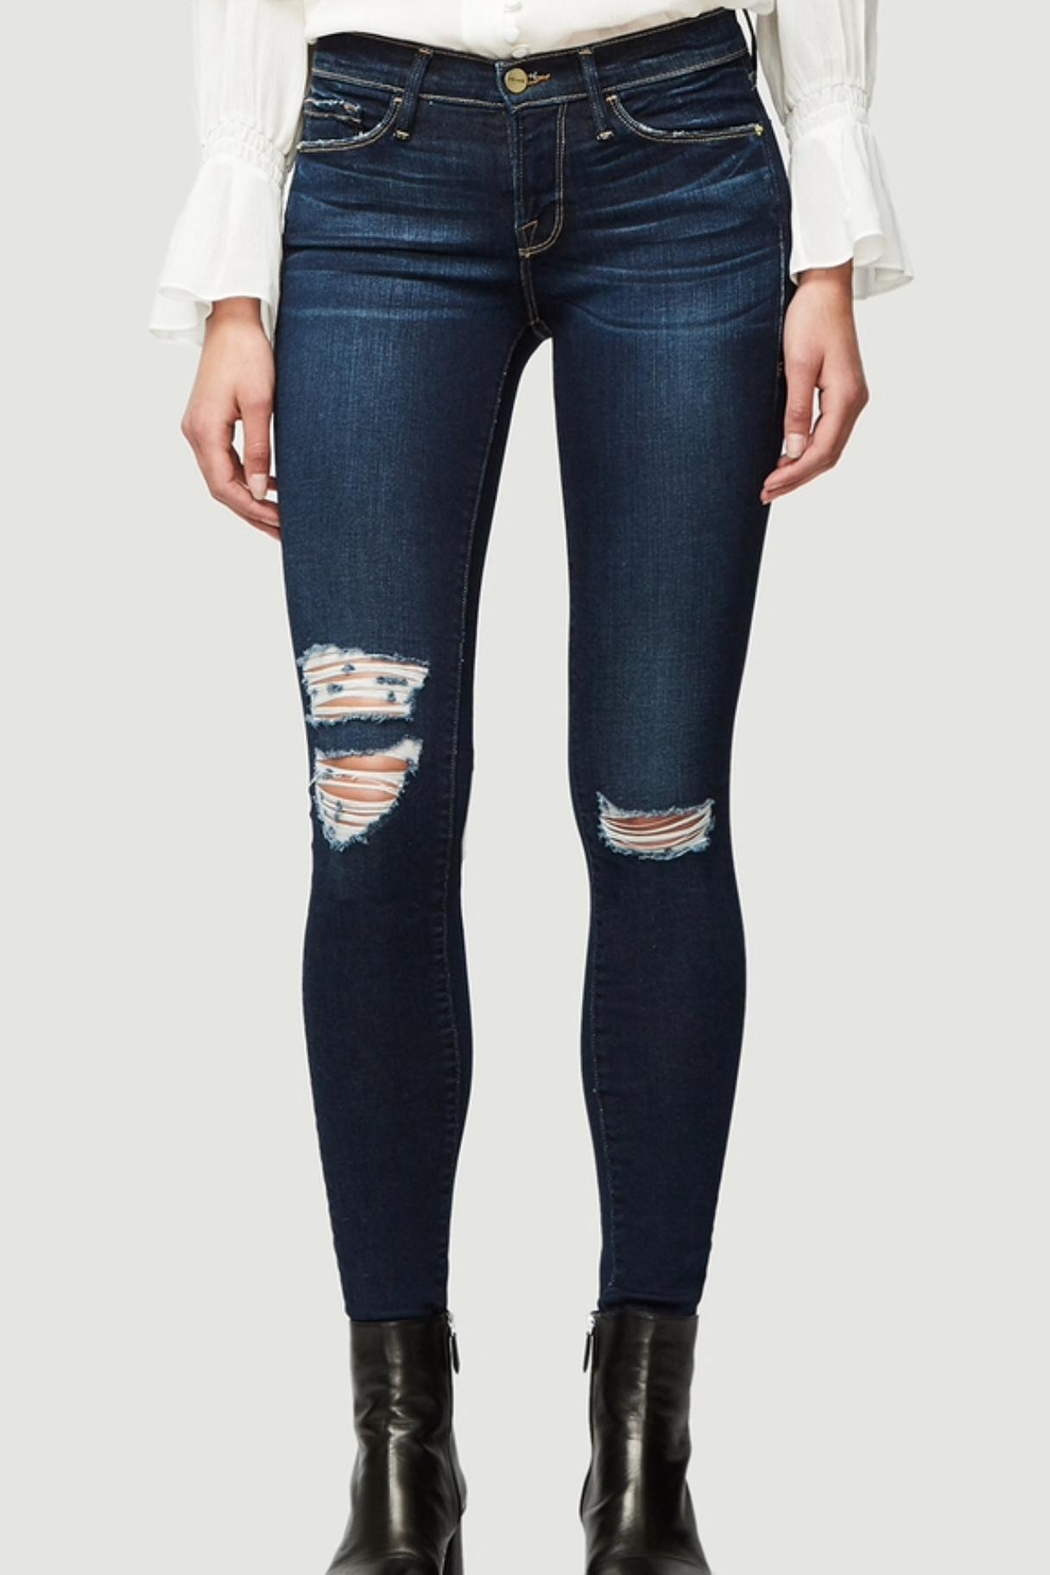 FRAME Denim Le Skinny Jeanne from New Jersey by free shop — Shoptiques